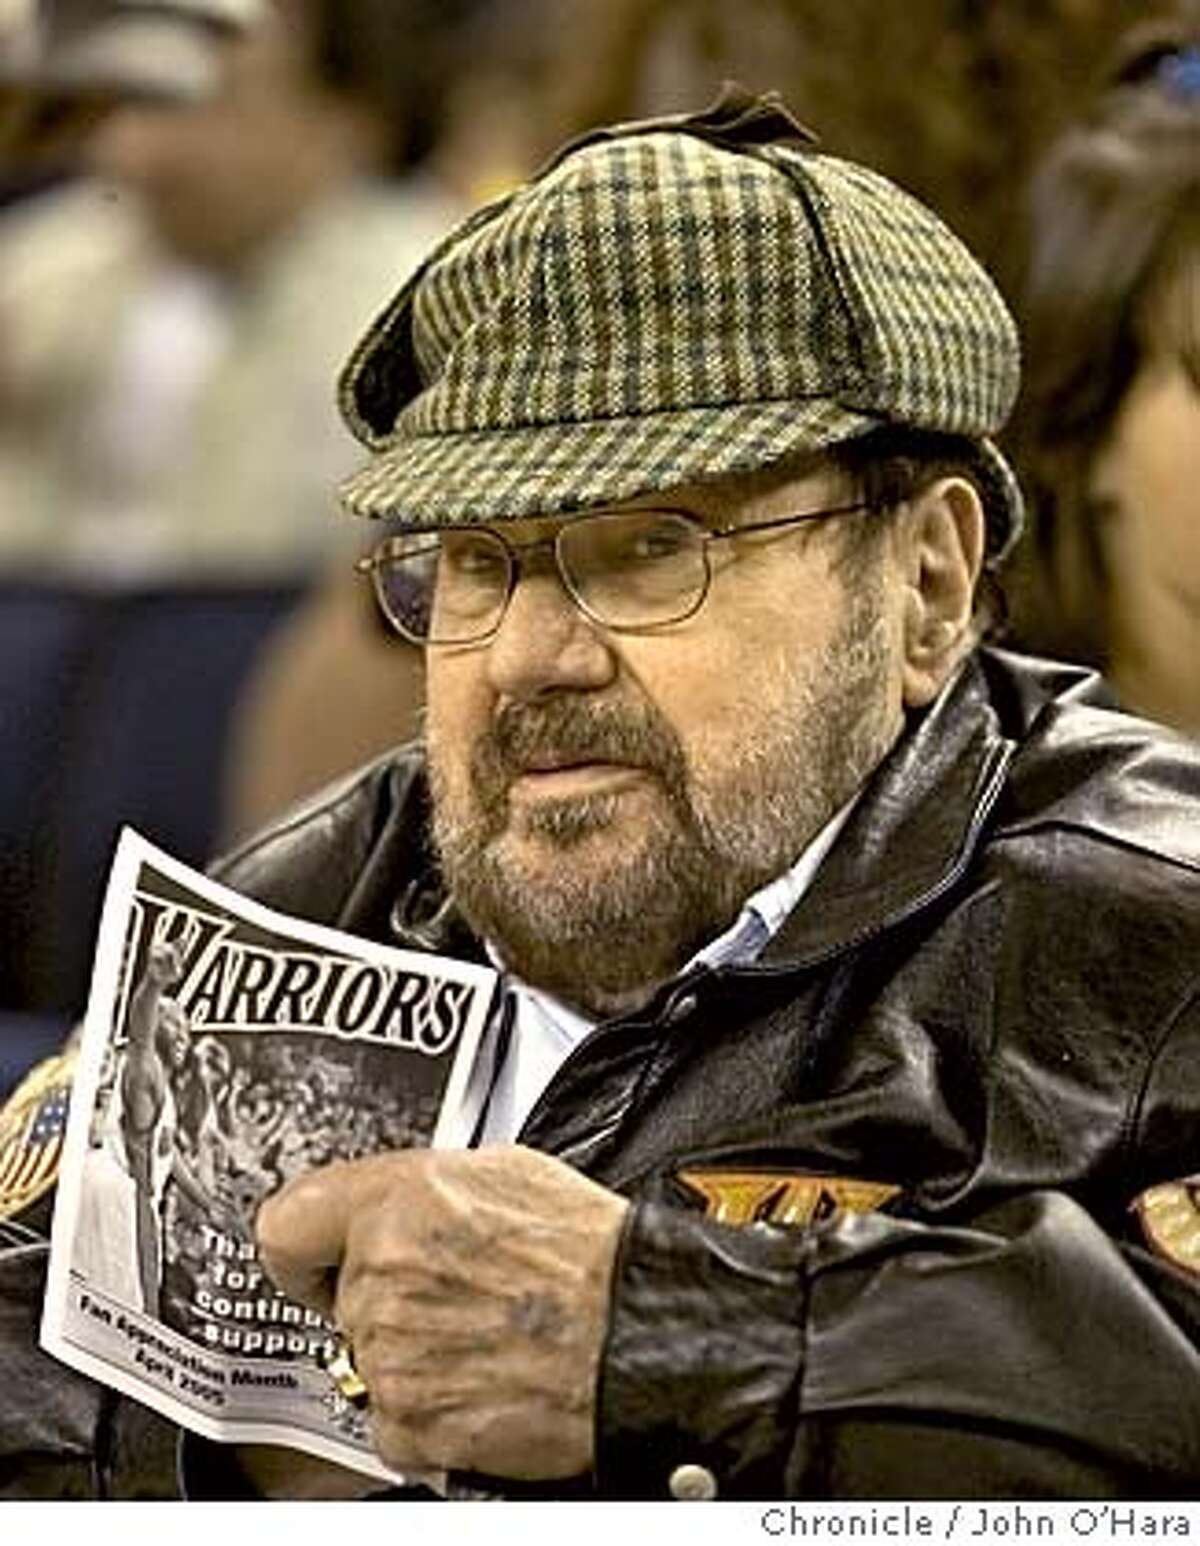 Oakland Arena, Golden State Warriors Franklin Mieuli, former Warrior owner . Owner of World Champion Warriors of 30 years or so ago. Warriors V/S Utah Jazz in last game of the season. Photo/John O'hara